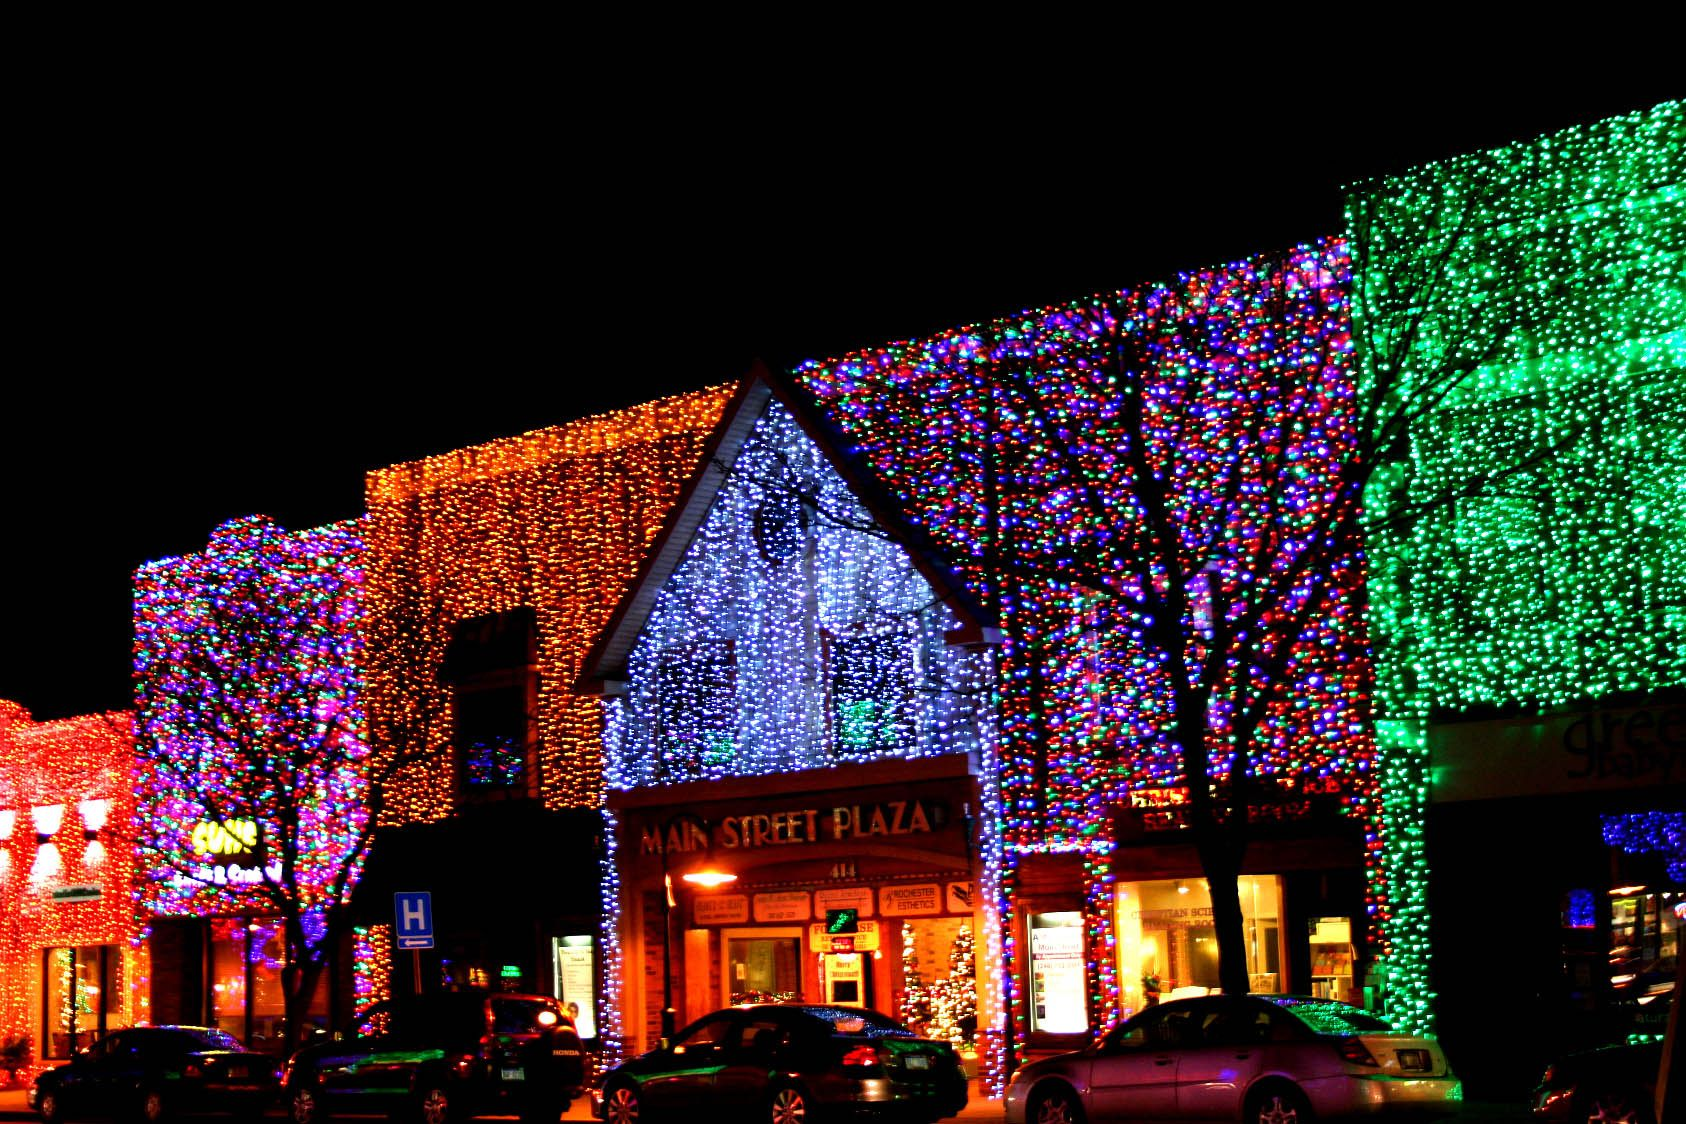 rochester mi christmas lighting. in downtown rochester hills, michigan, at christmastime the town decorates it\u0027s buildings with solid lights. it is such a beautiful sight to behold! mi christmas lighting